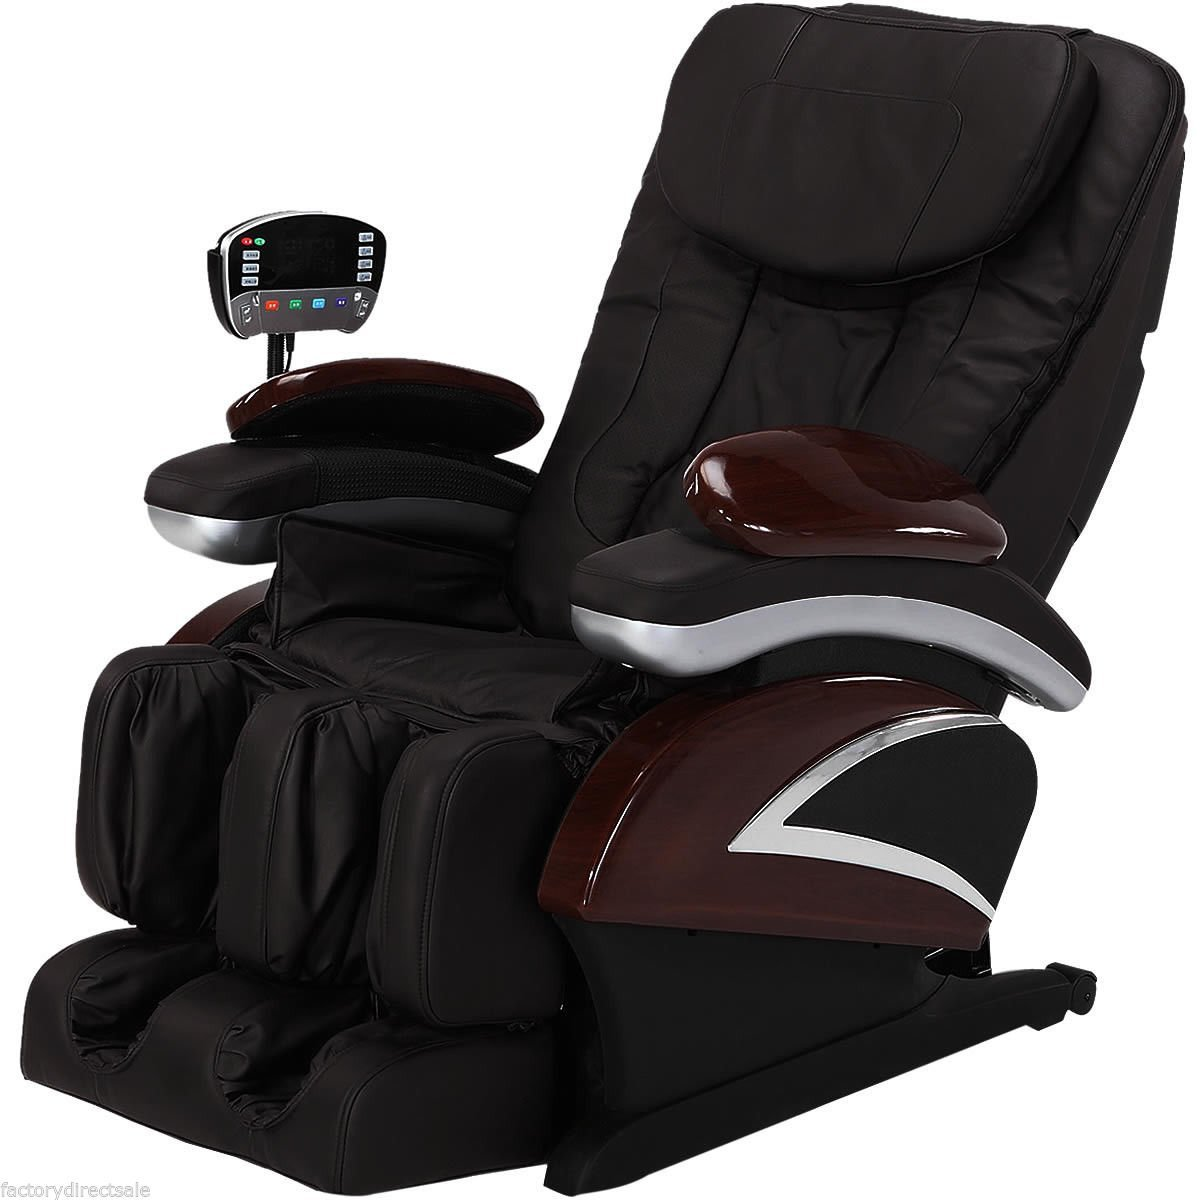 Image of: Model of Massage Recliner Chair